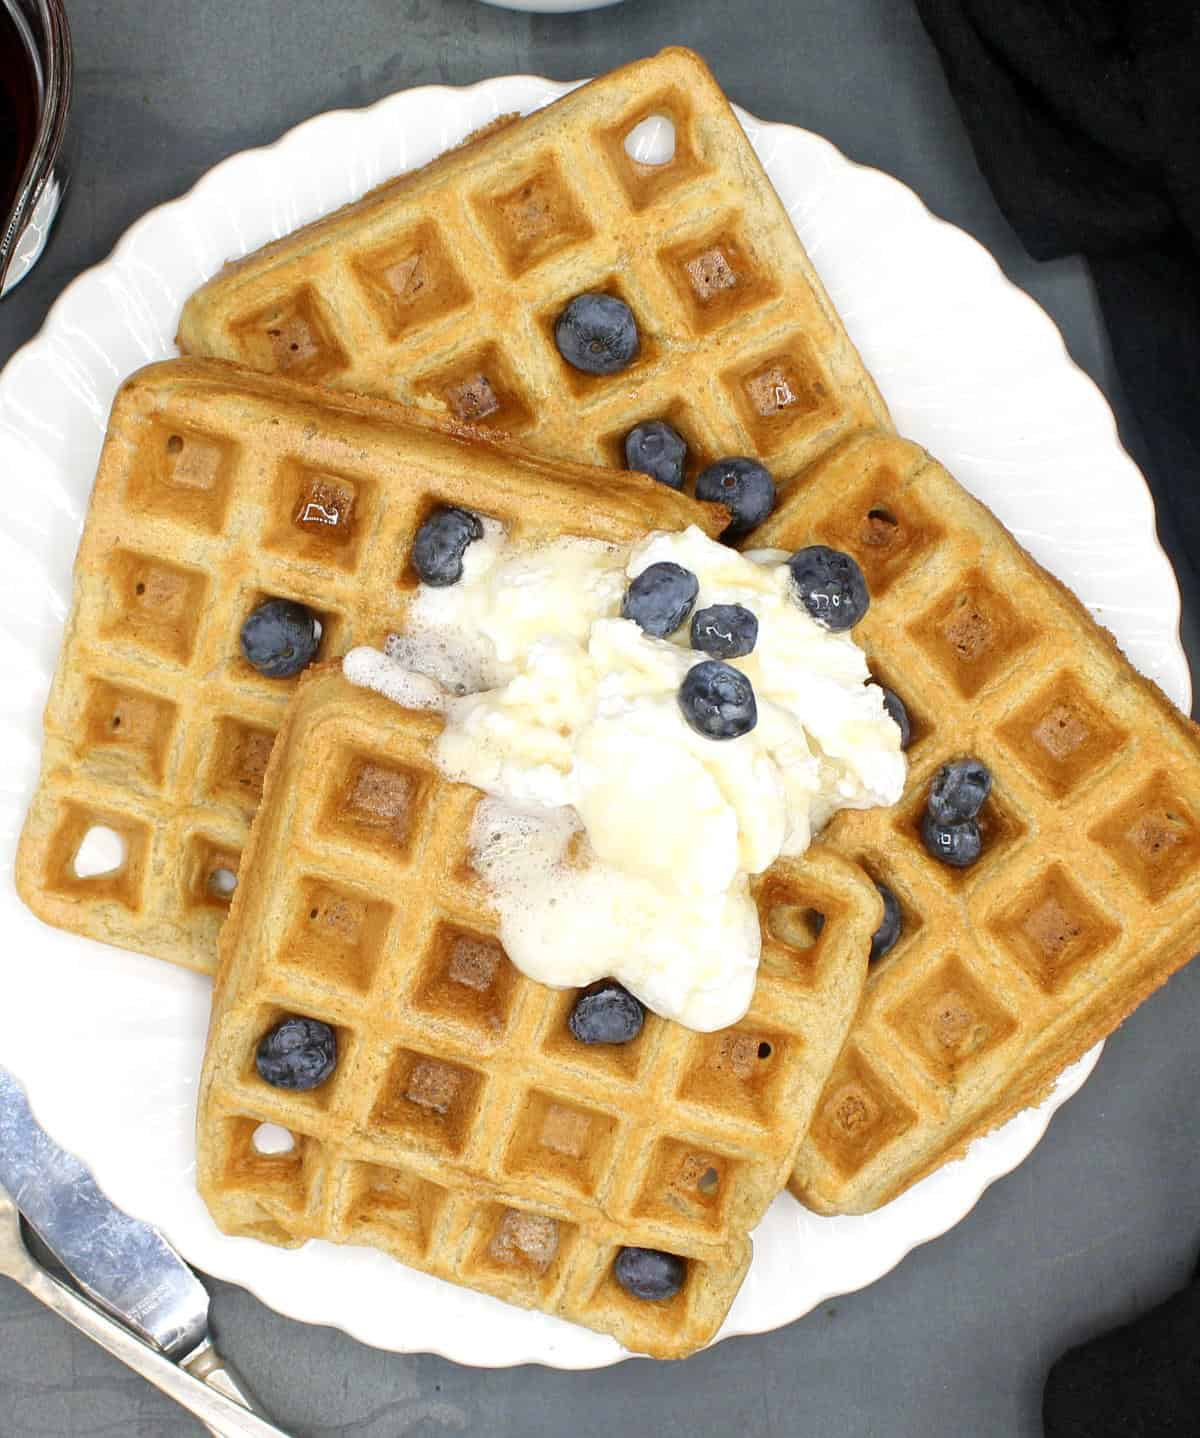 Vegan waffles on a white plate with whipped cream and blueberries.